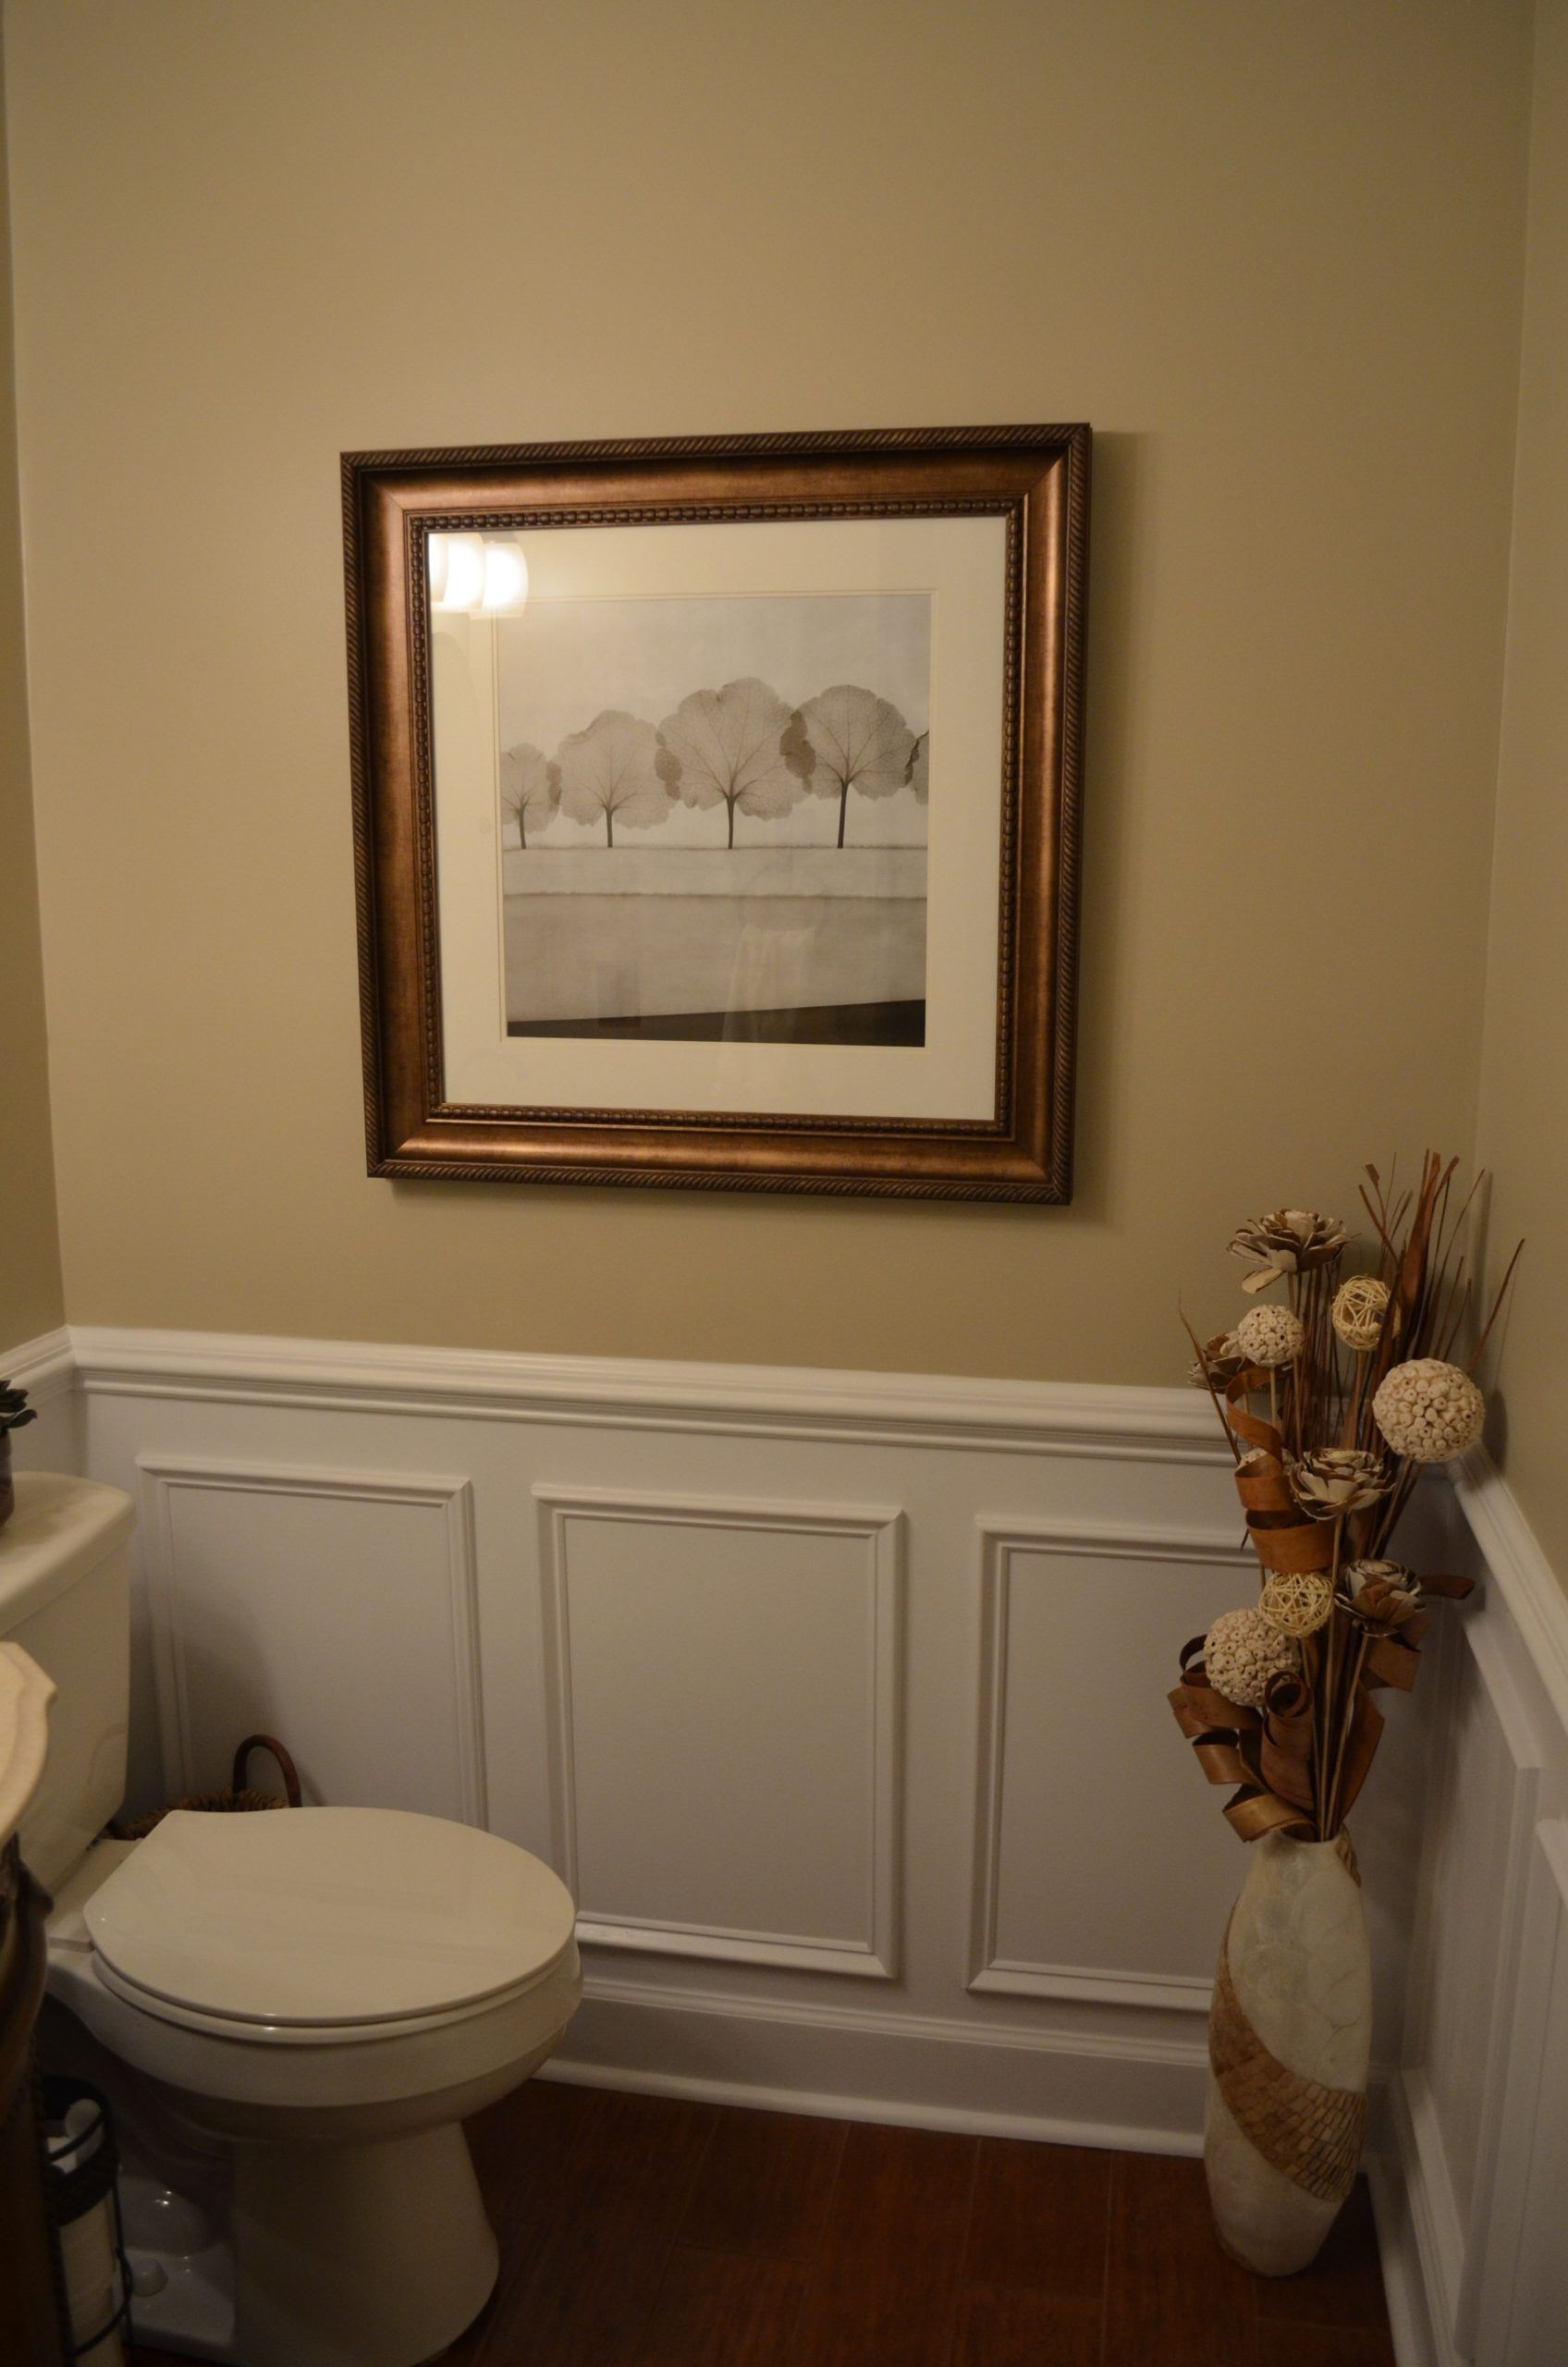 Bathroom Chair Molding in 10  Molded chair, Small bath, Picture